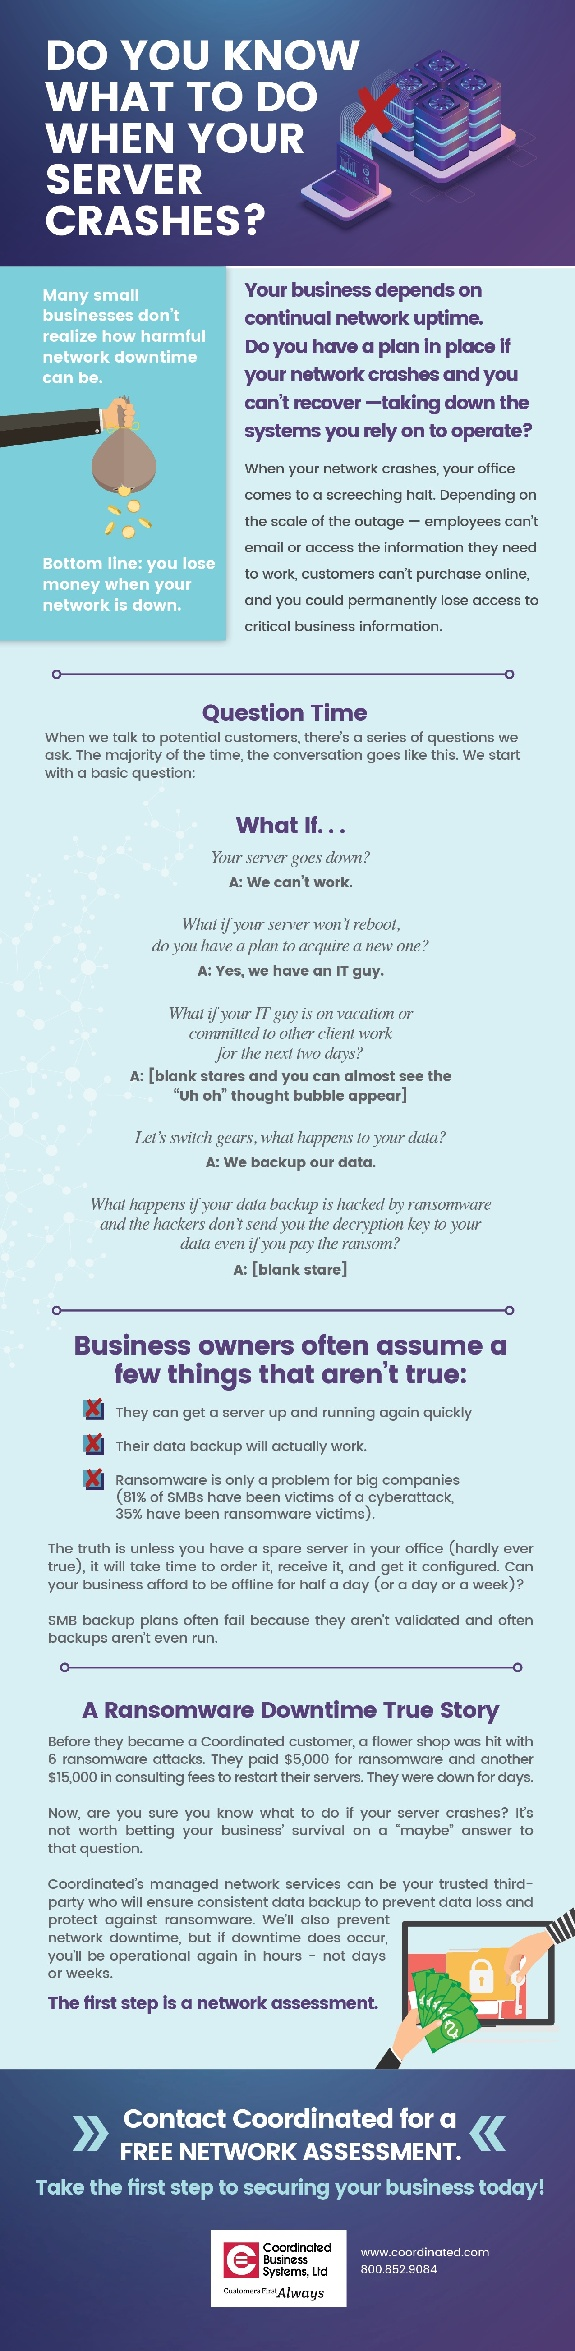 [Free Infographic] Do You Know What To Do When Your Server Crashes